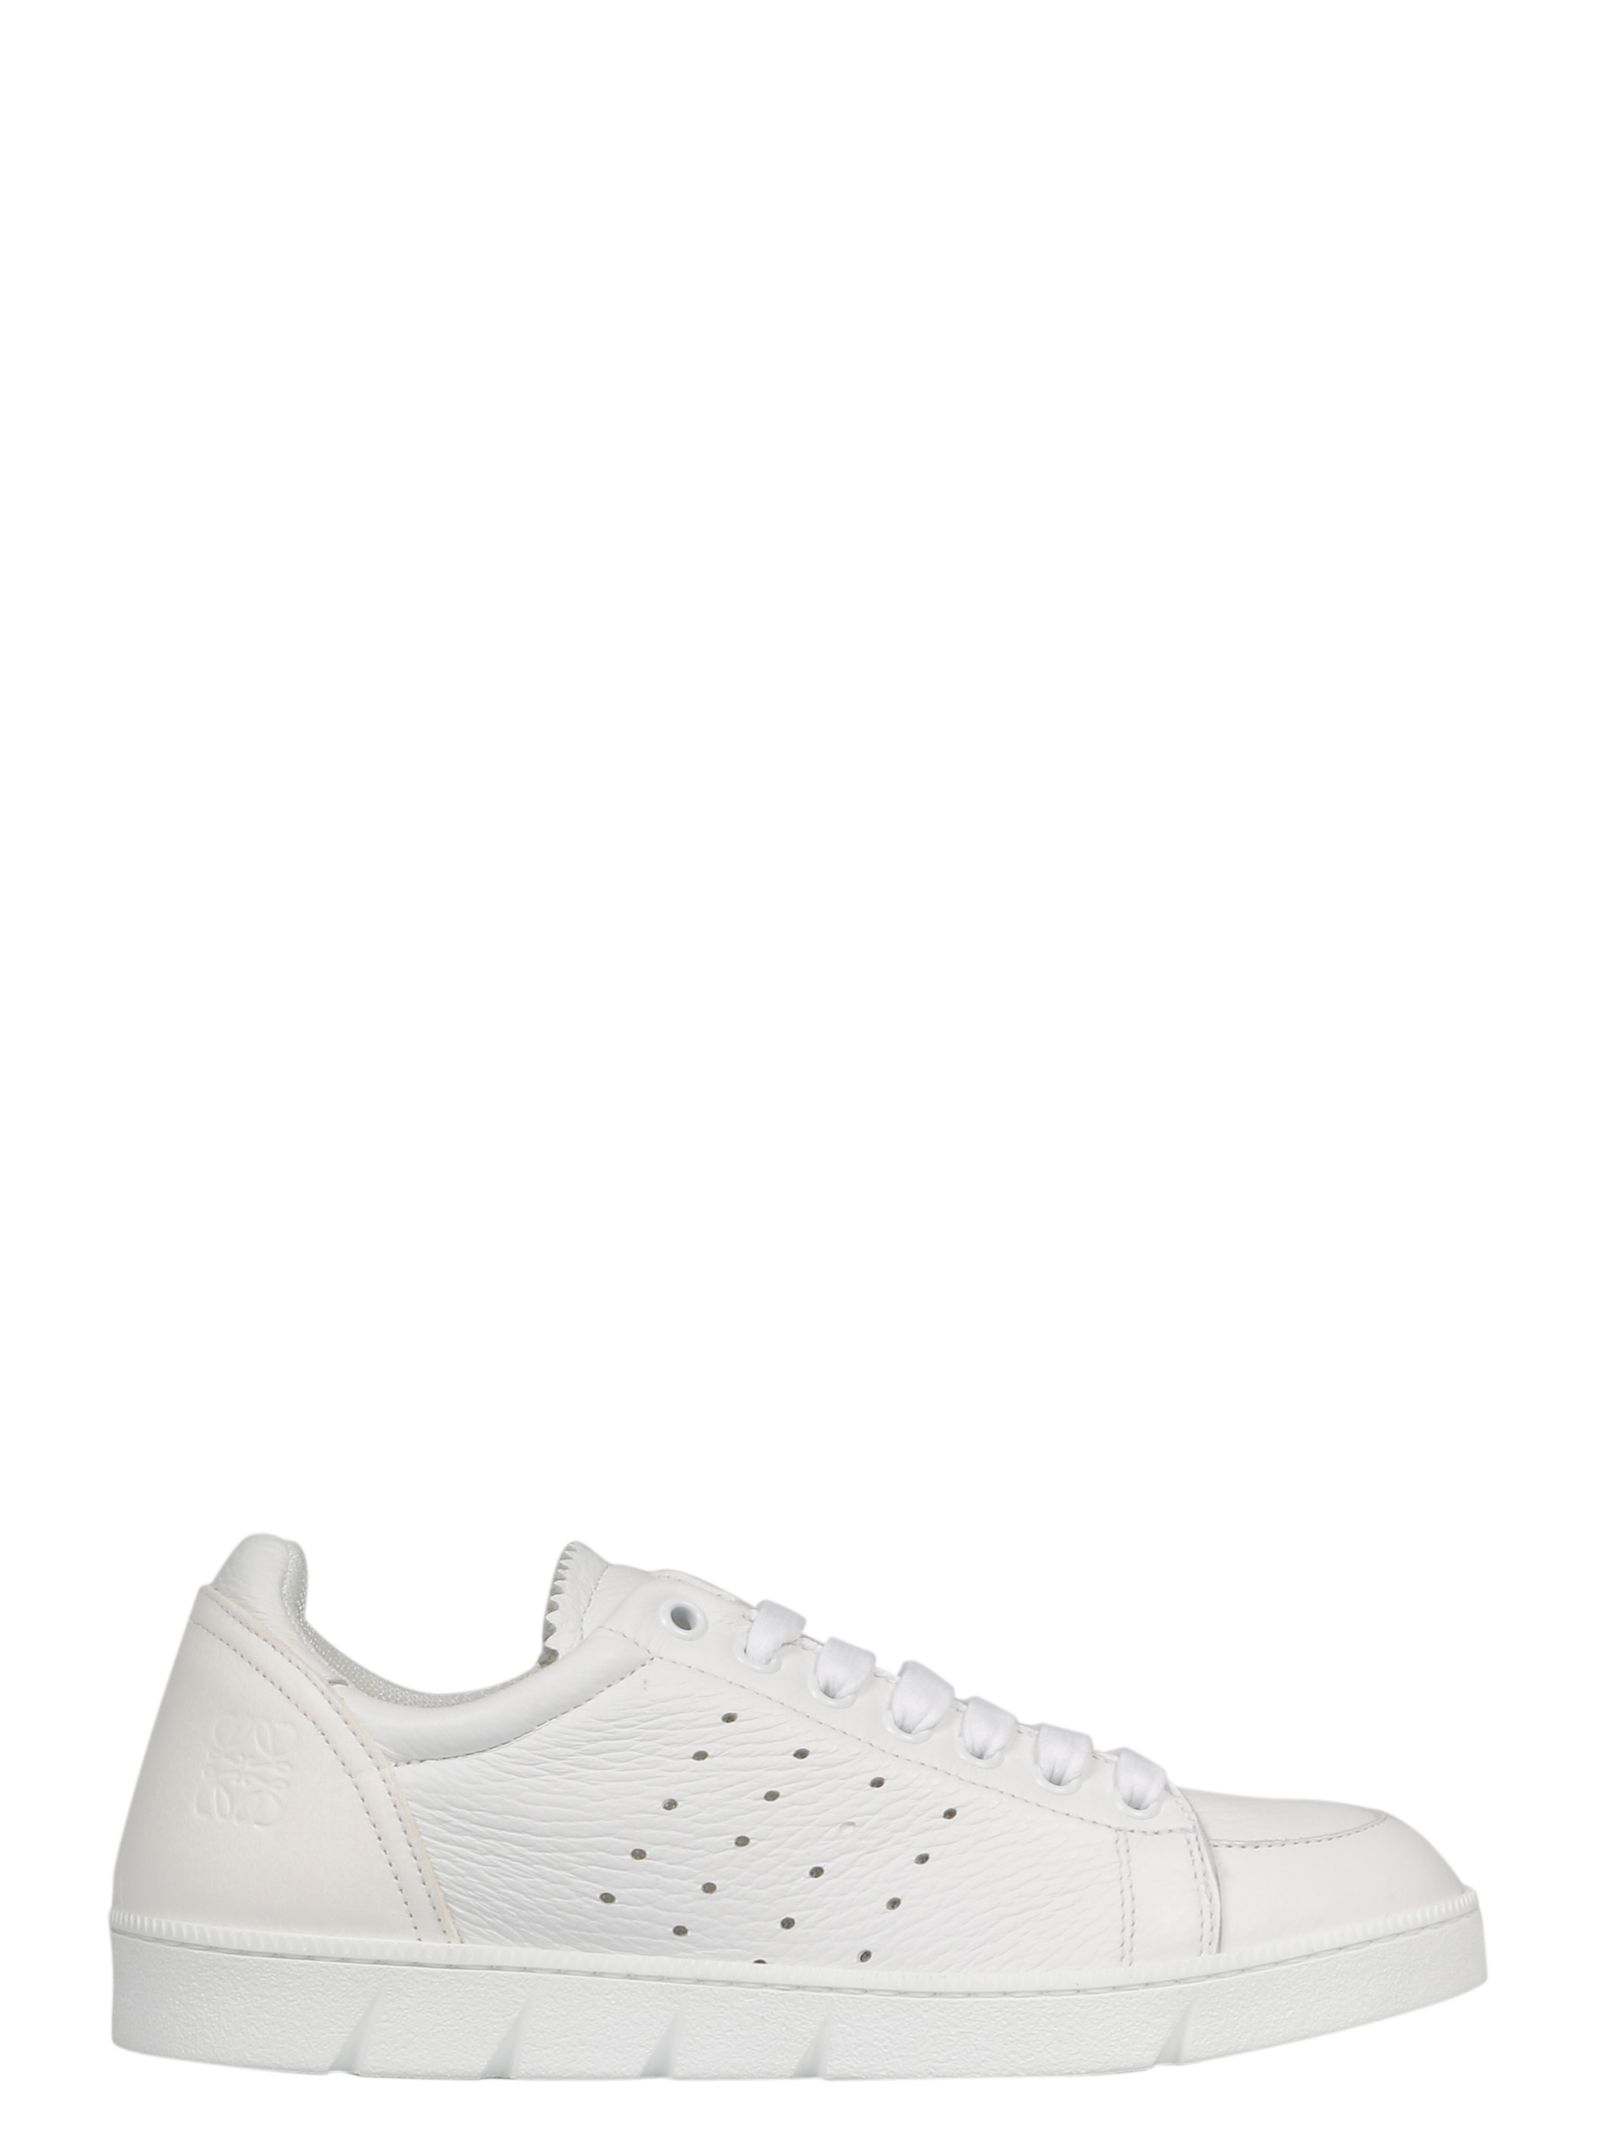 Loewe Sneakers WOMEN'S 453181122100 WHITE LEATHER SNEAKERS